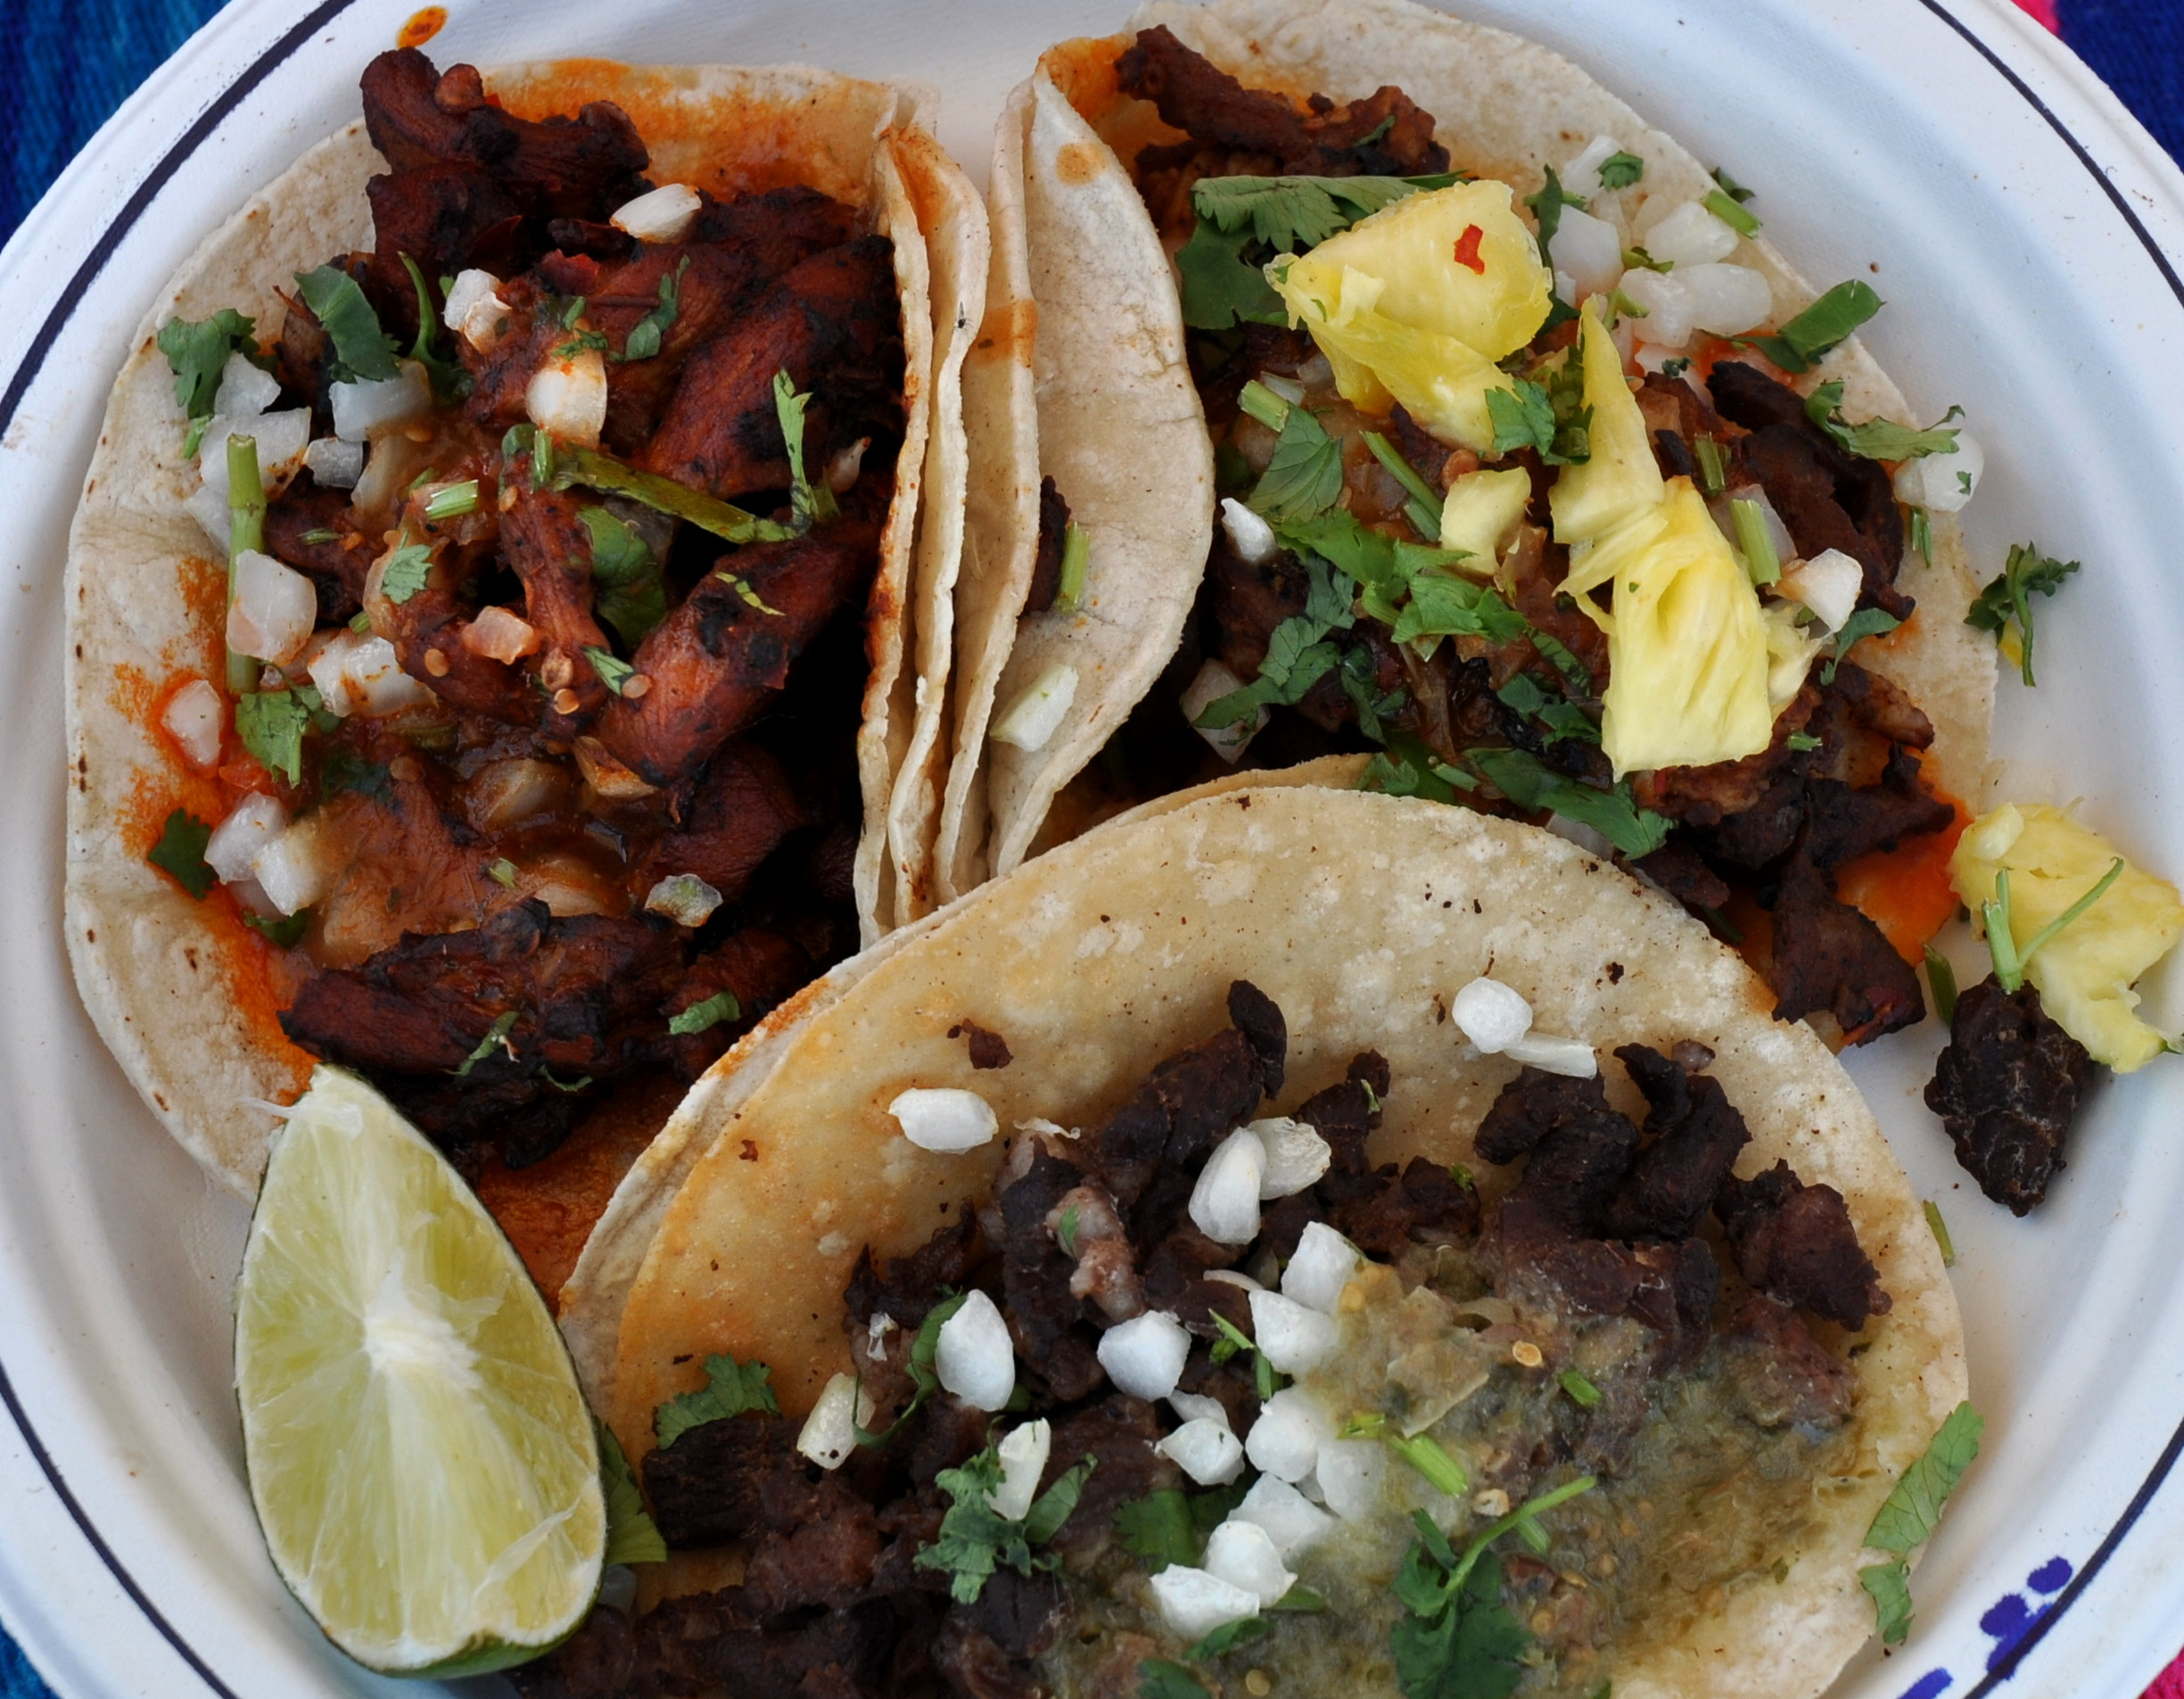 Tacos from Los Chilangos. Photo copyright 2011 by Zachary D. Lyons.